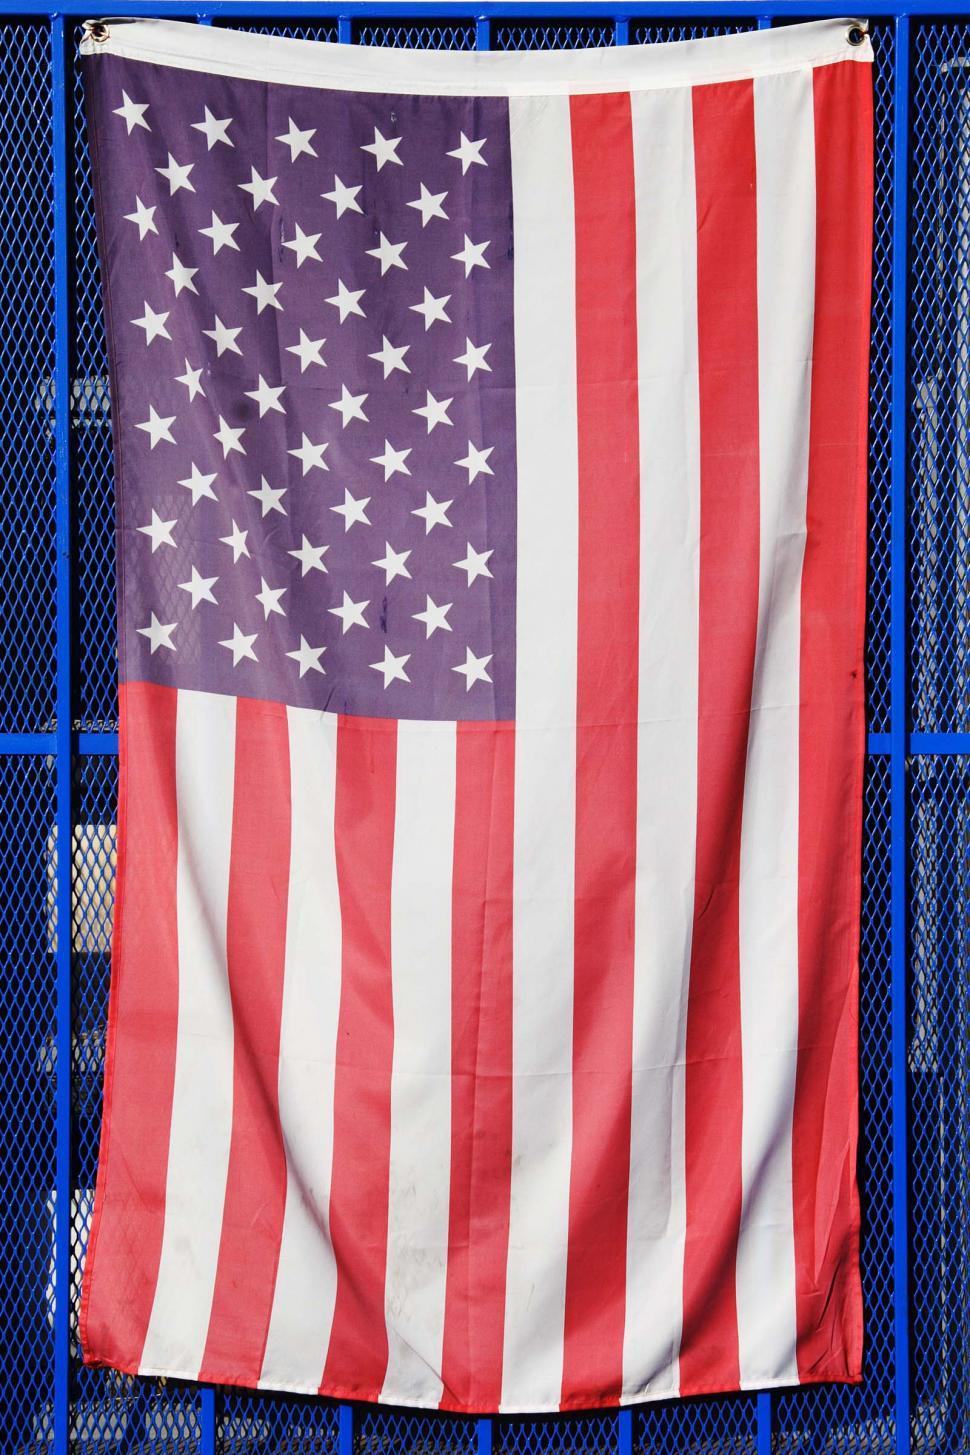 Download Free Stock Photo of Hanging American Flag